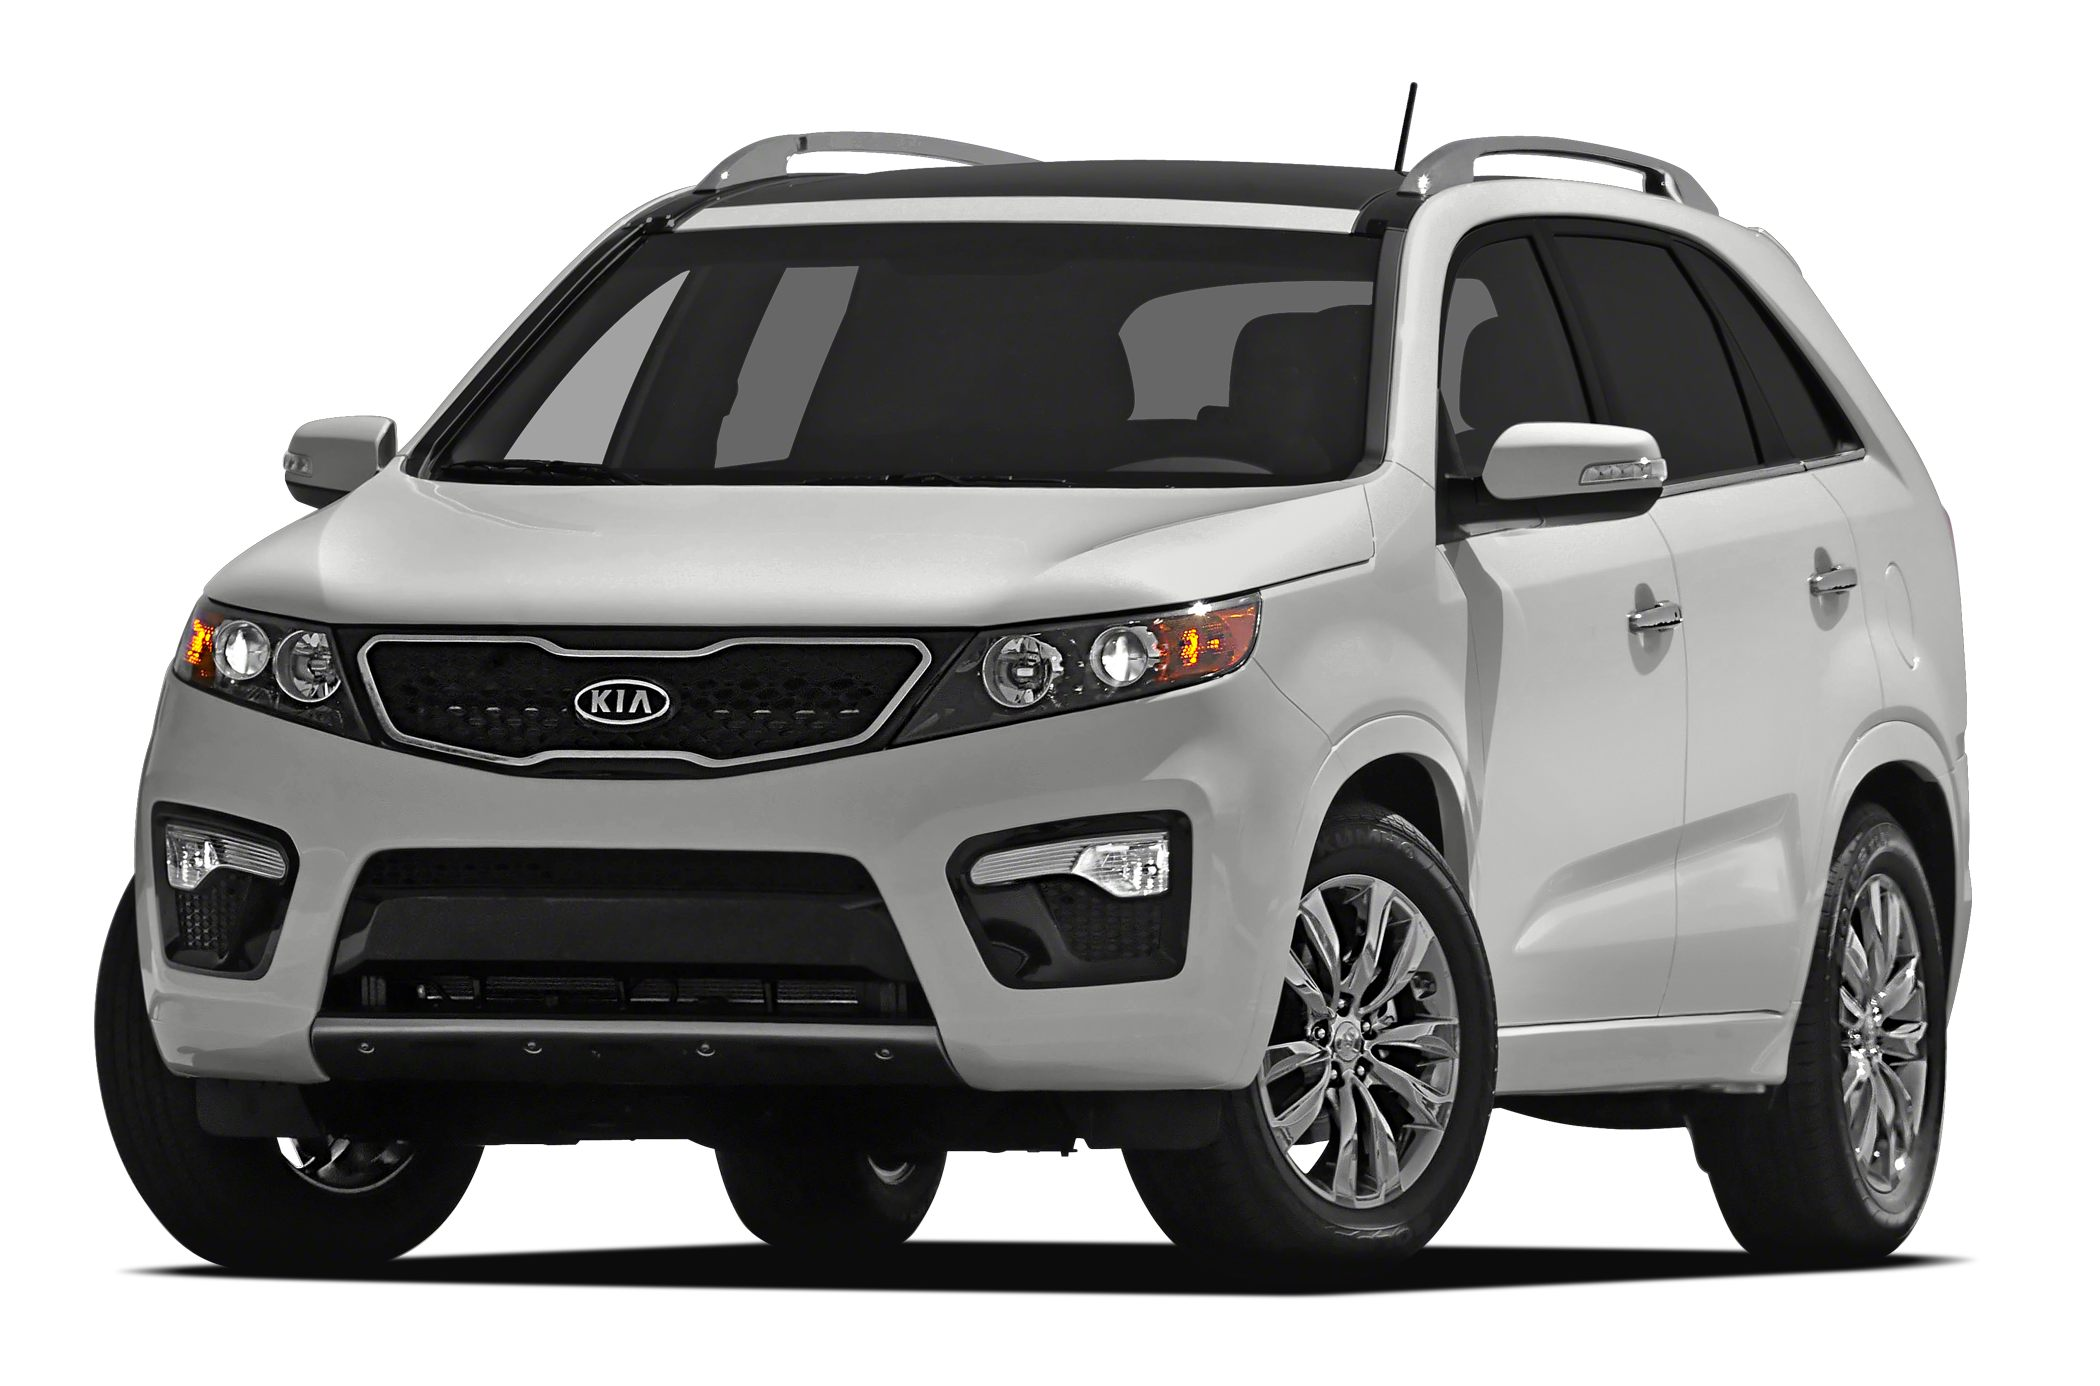 2013 Kia Sorento Sx V6 4dr All Wheel Drive Specs And Prices Front Trailer Hitch